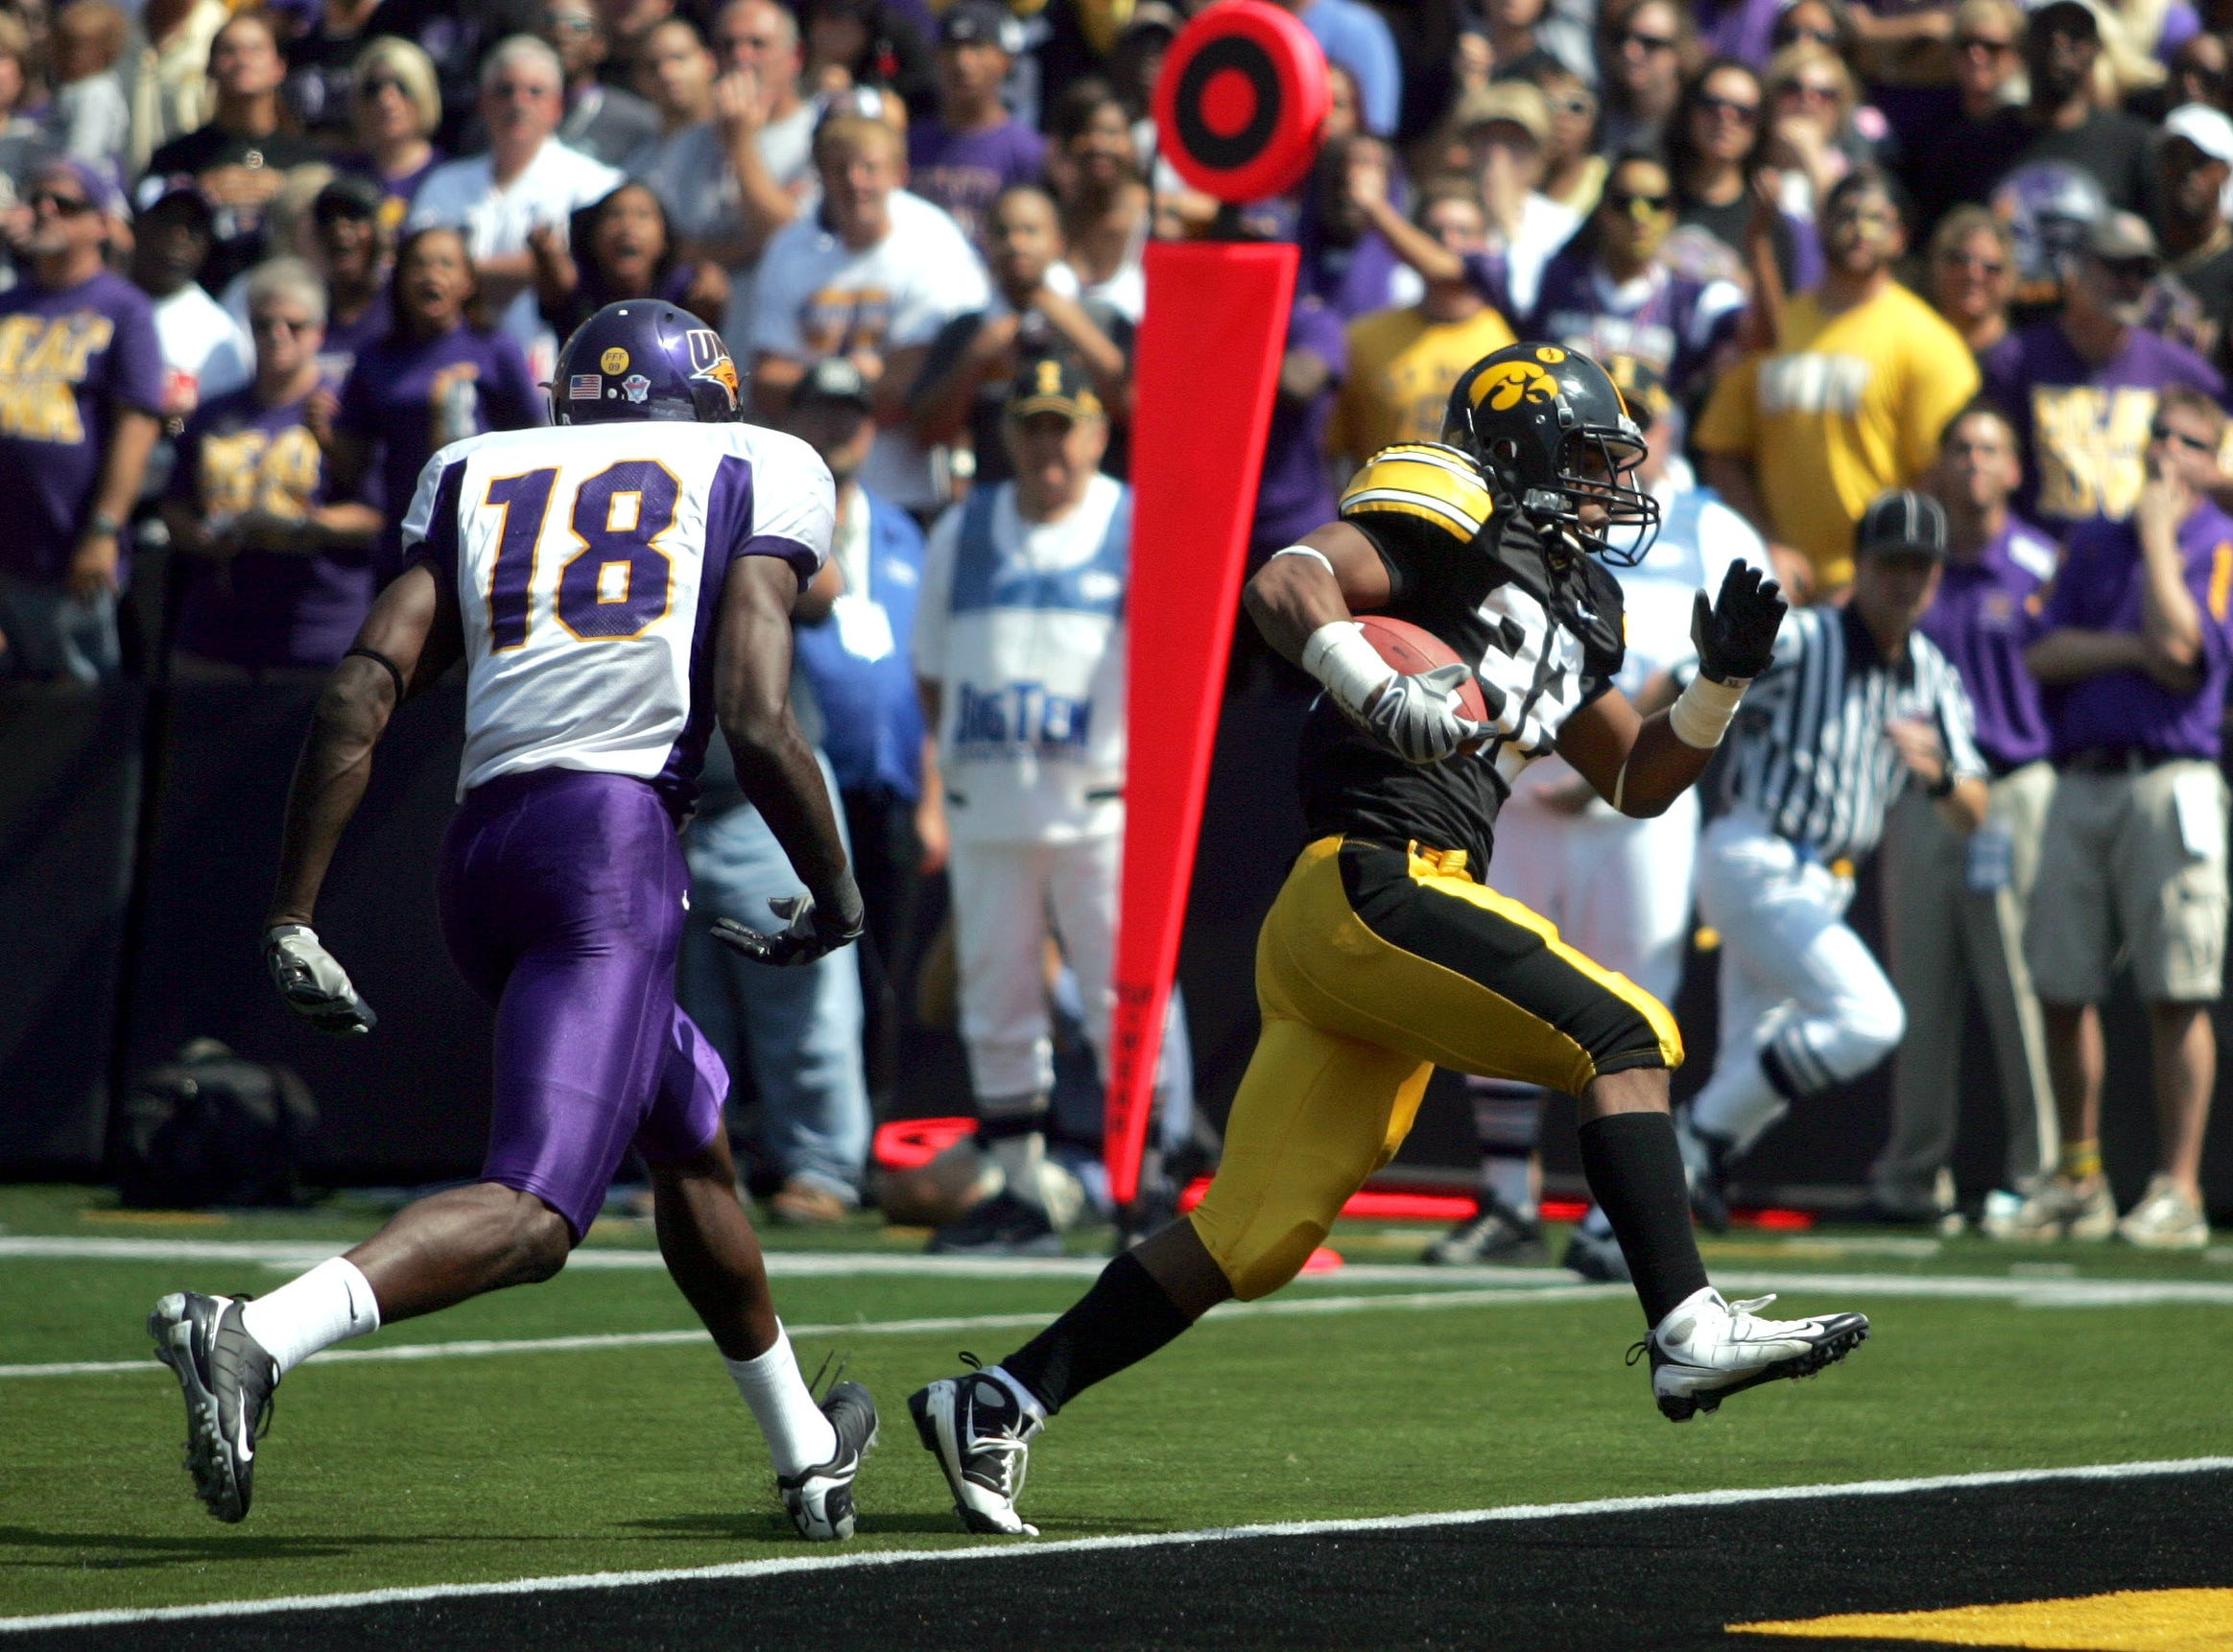 s0906iowafb - shot 09/05/09 Iowa City, IA.  Christopher Gannon/The Register  -- Iowa vs. Northern Iowa --   Iowa running back Adam Robinson scores a third quarter touchdown in front of Northern Iowa cornerback Quentin Scott (18) Saturday in Iowa City.  (Christopher Gannon/The Des Moines Register)